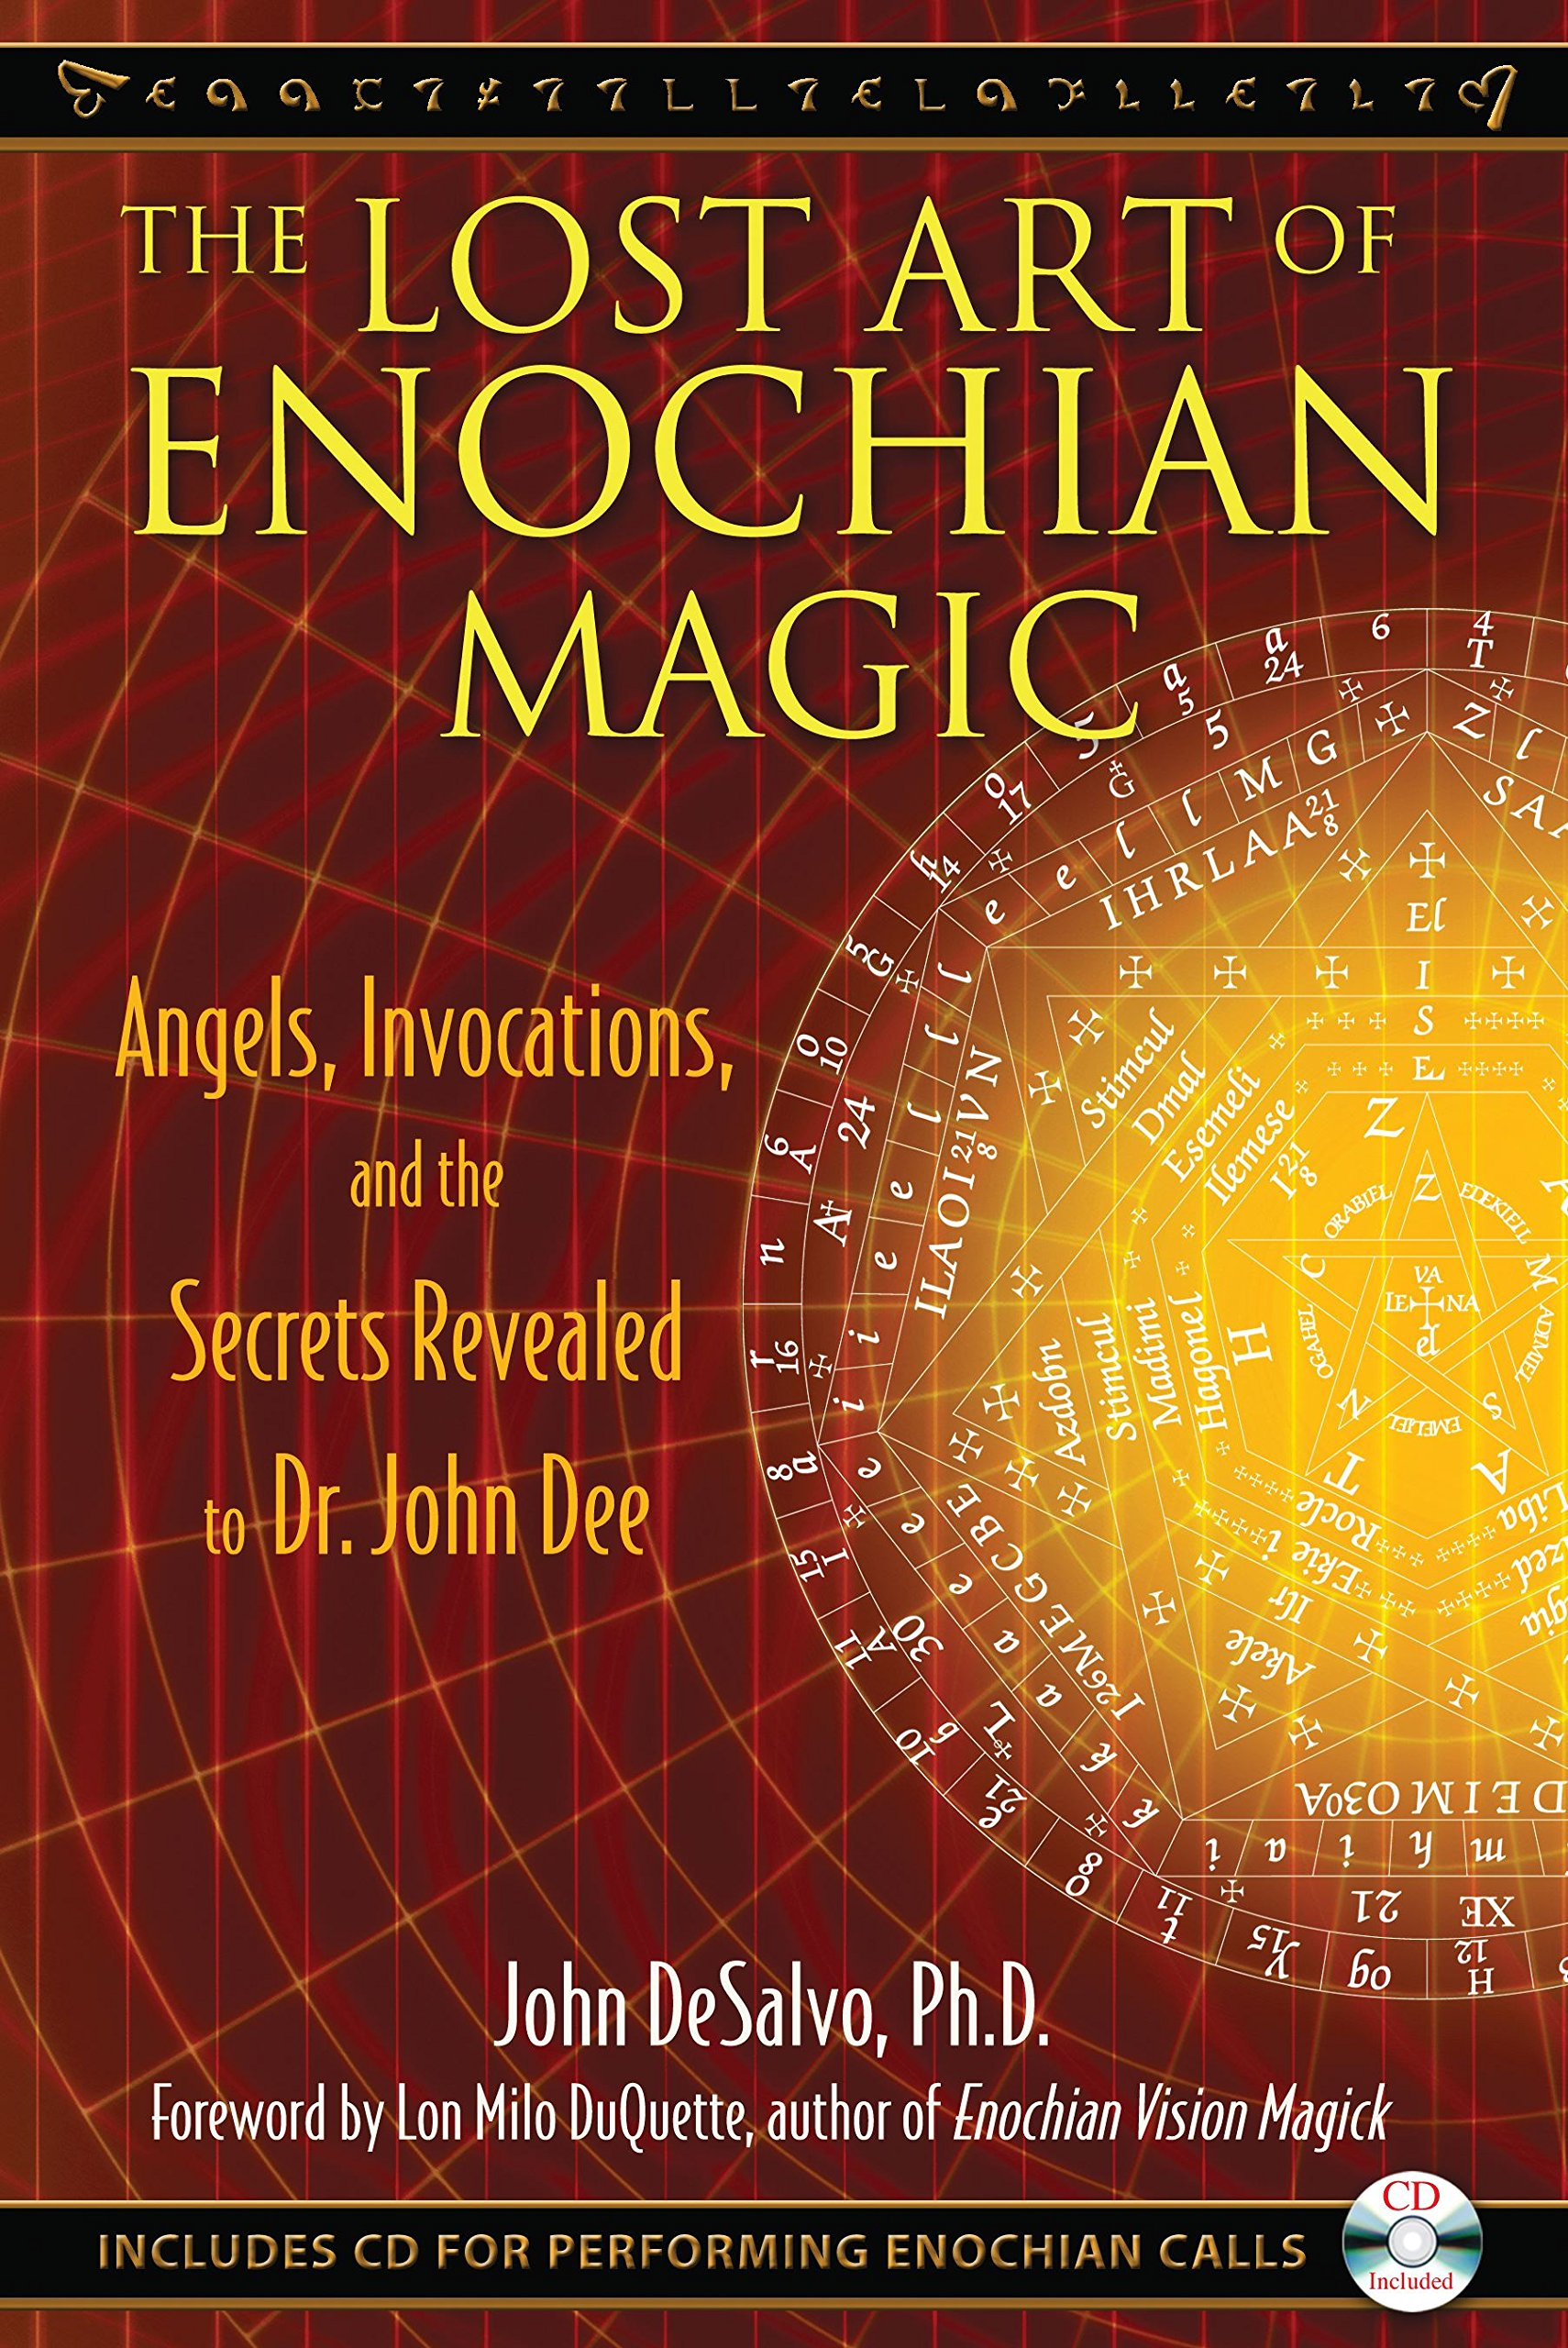 The Lost Art of Enochian Magic: Angels, Invocations, and the Secrets Revealed to Dr. John Dee ebook